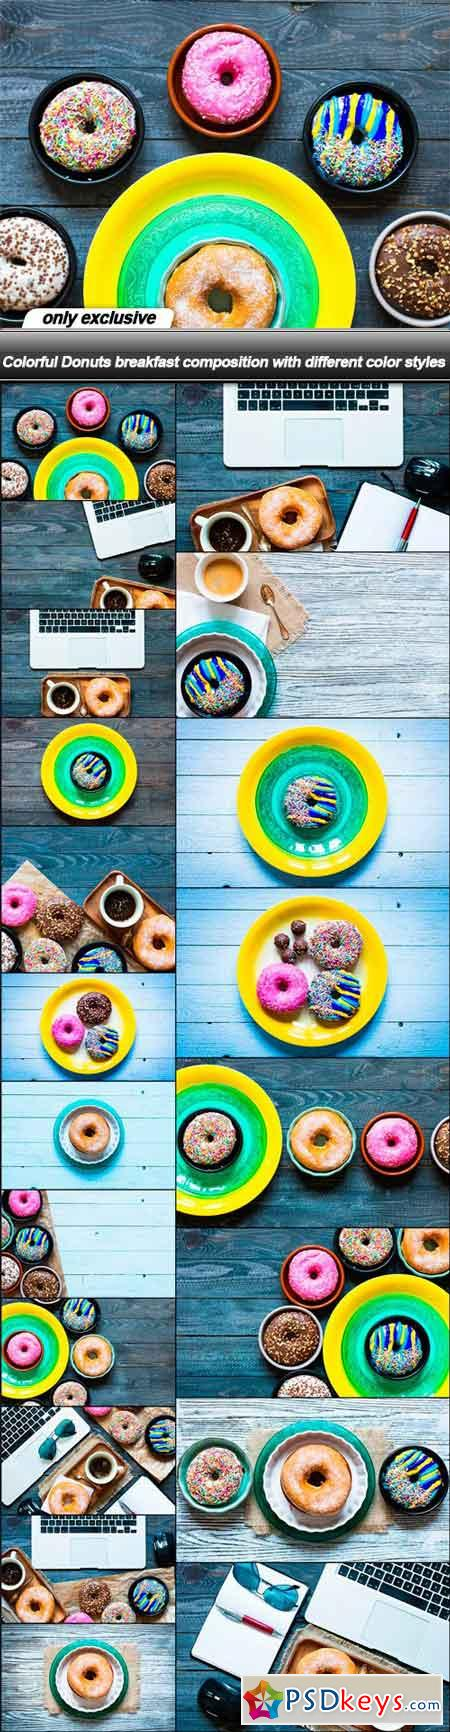 Colorful Donuts breakfast composition with different color styles - 20 UHQ JPEG